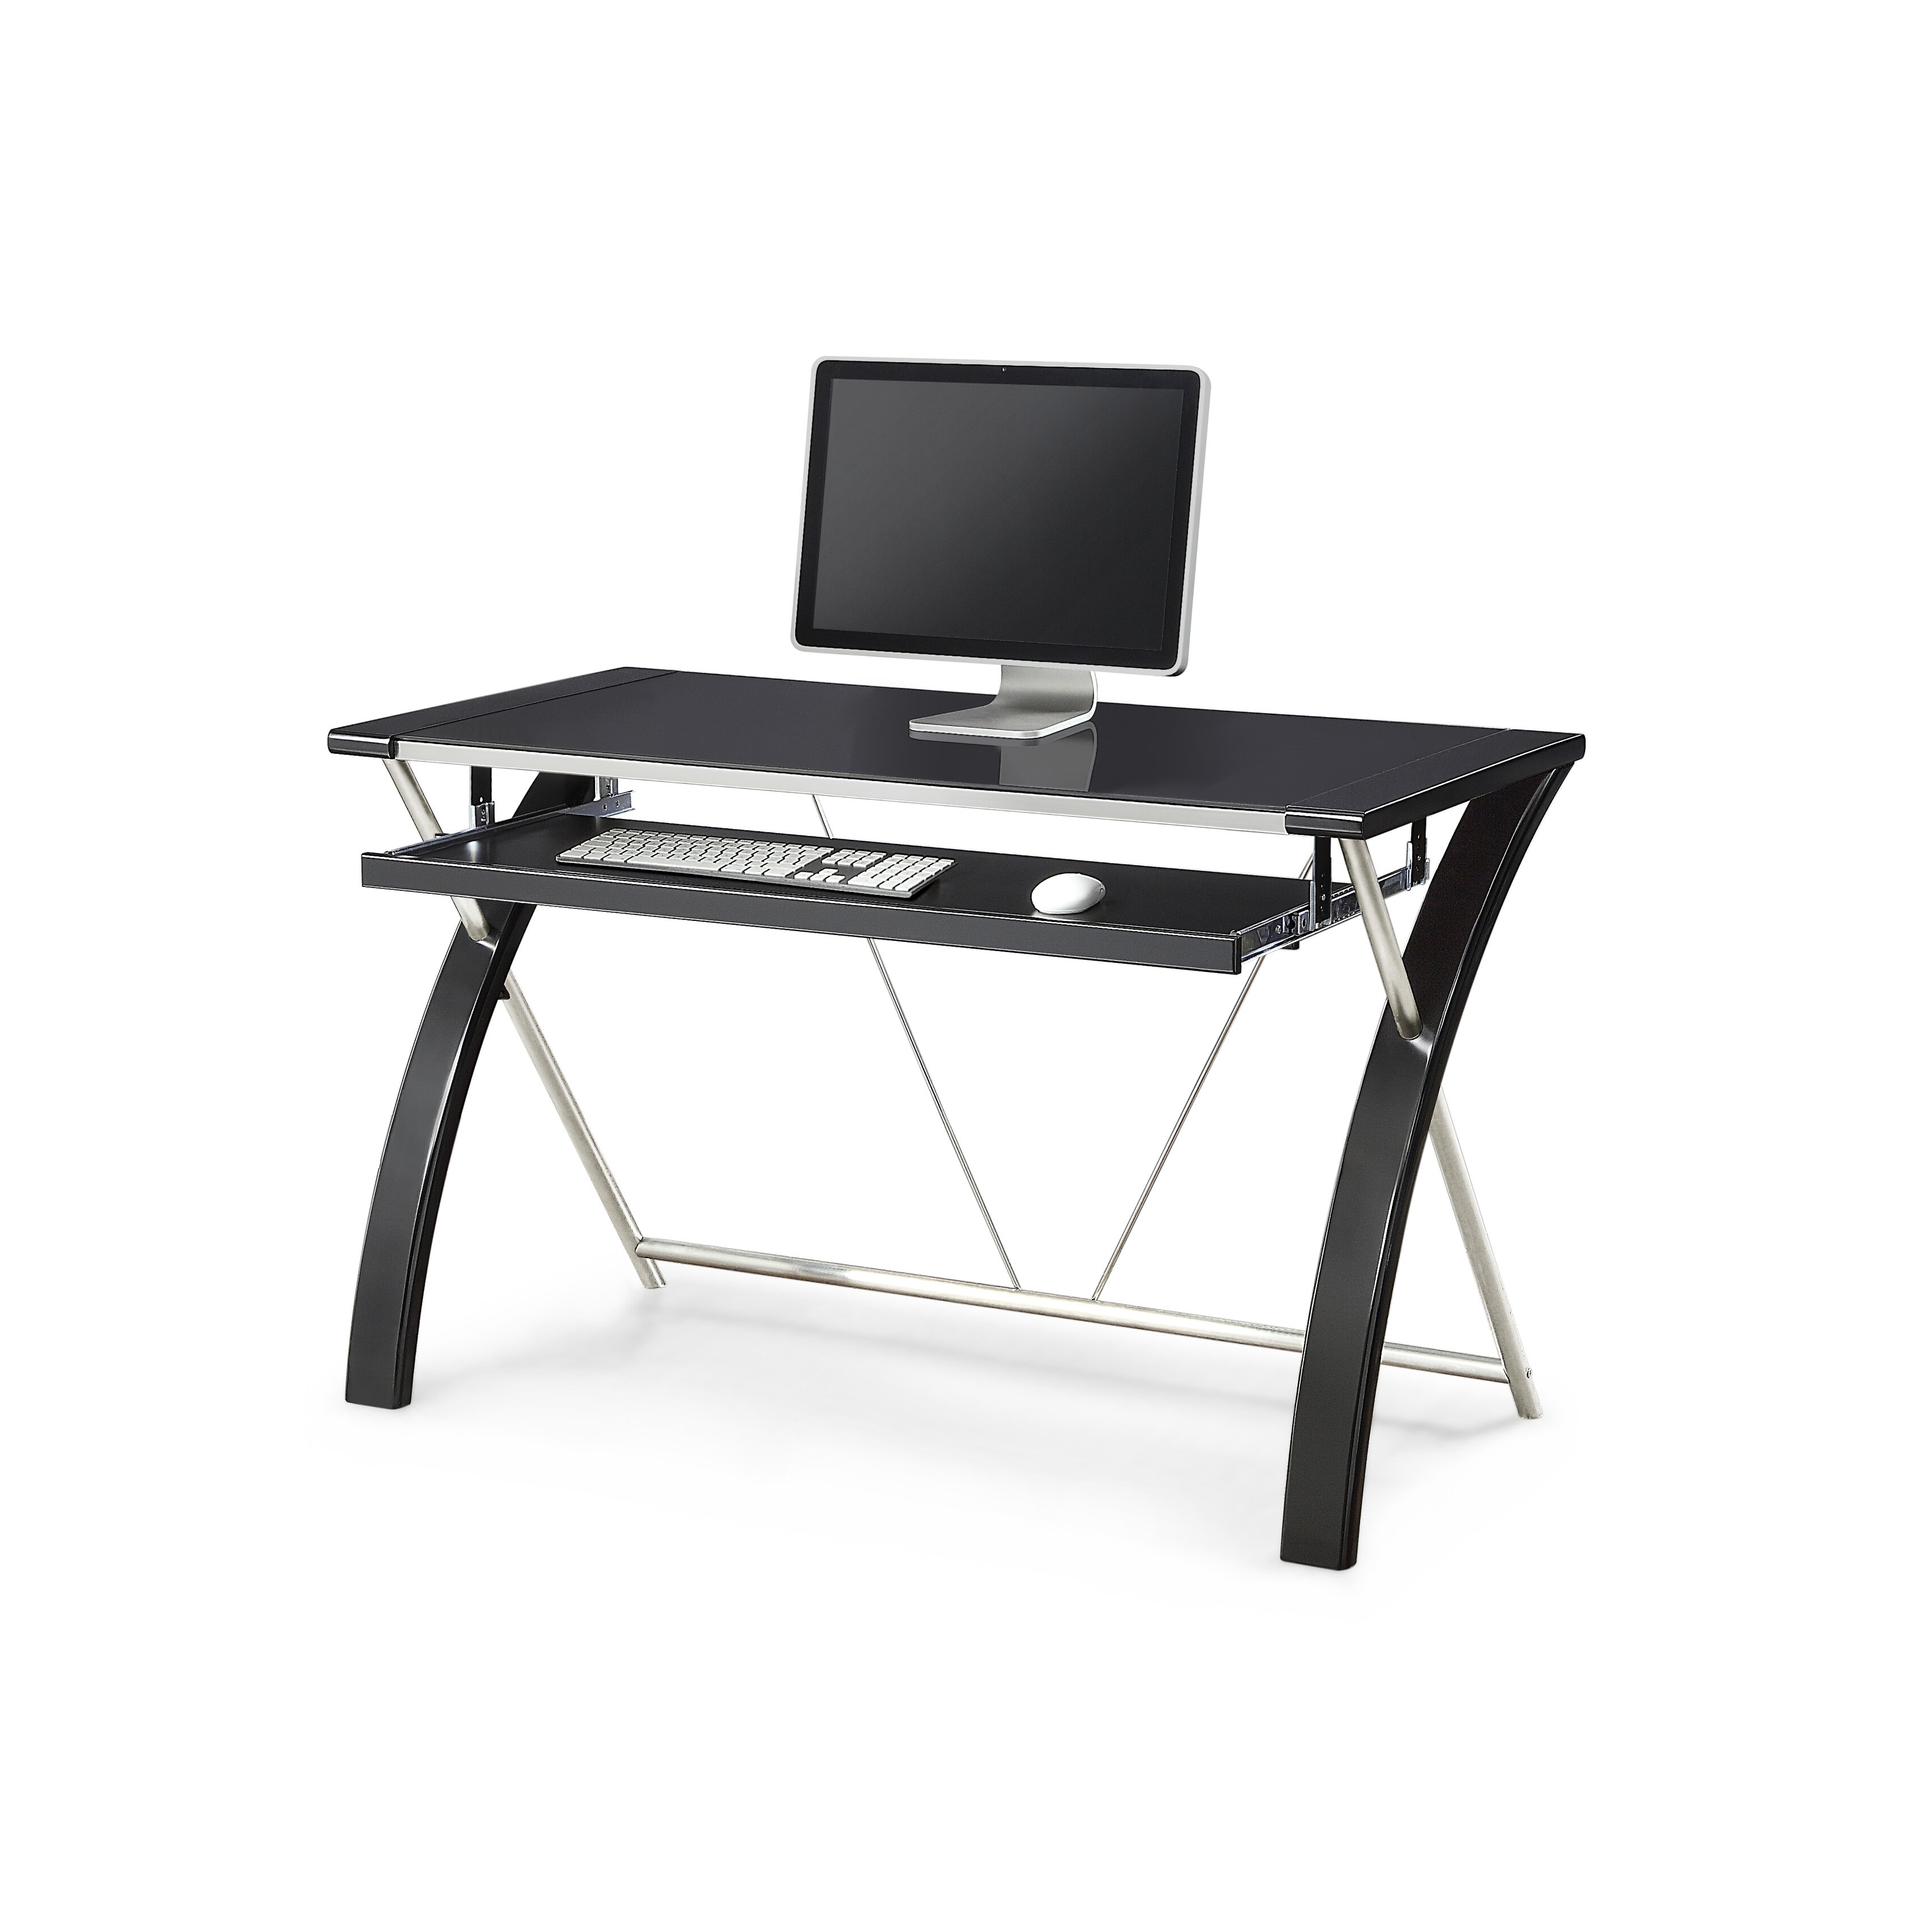 Whalen Computer Desk Whalen Furniture Jcs30203 2ad